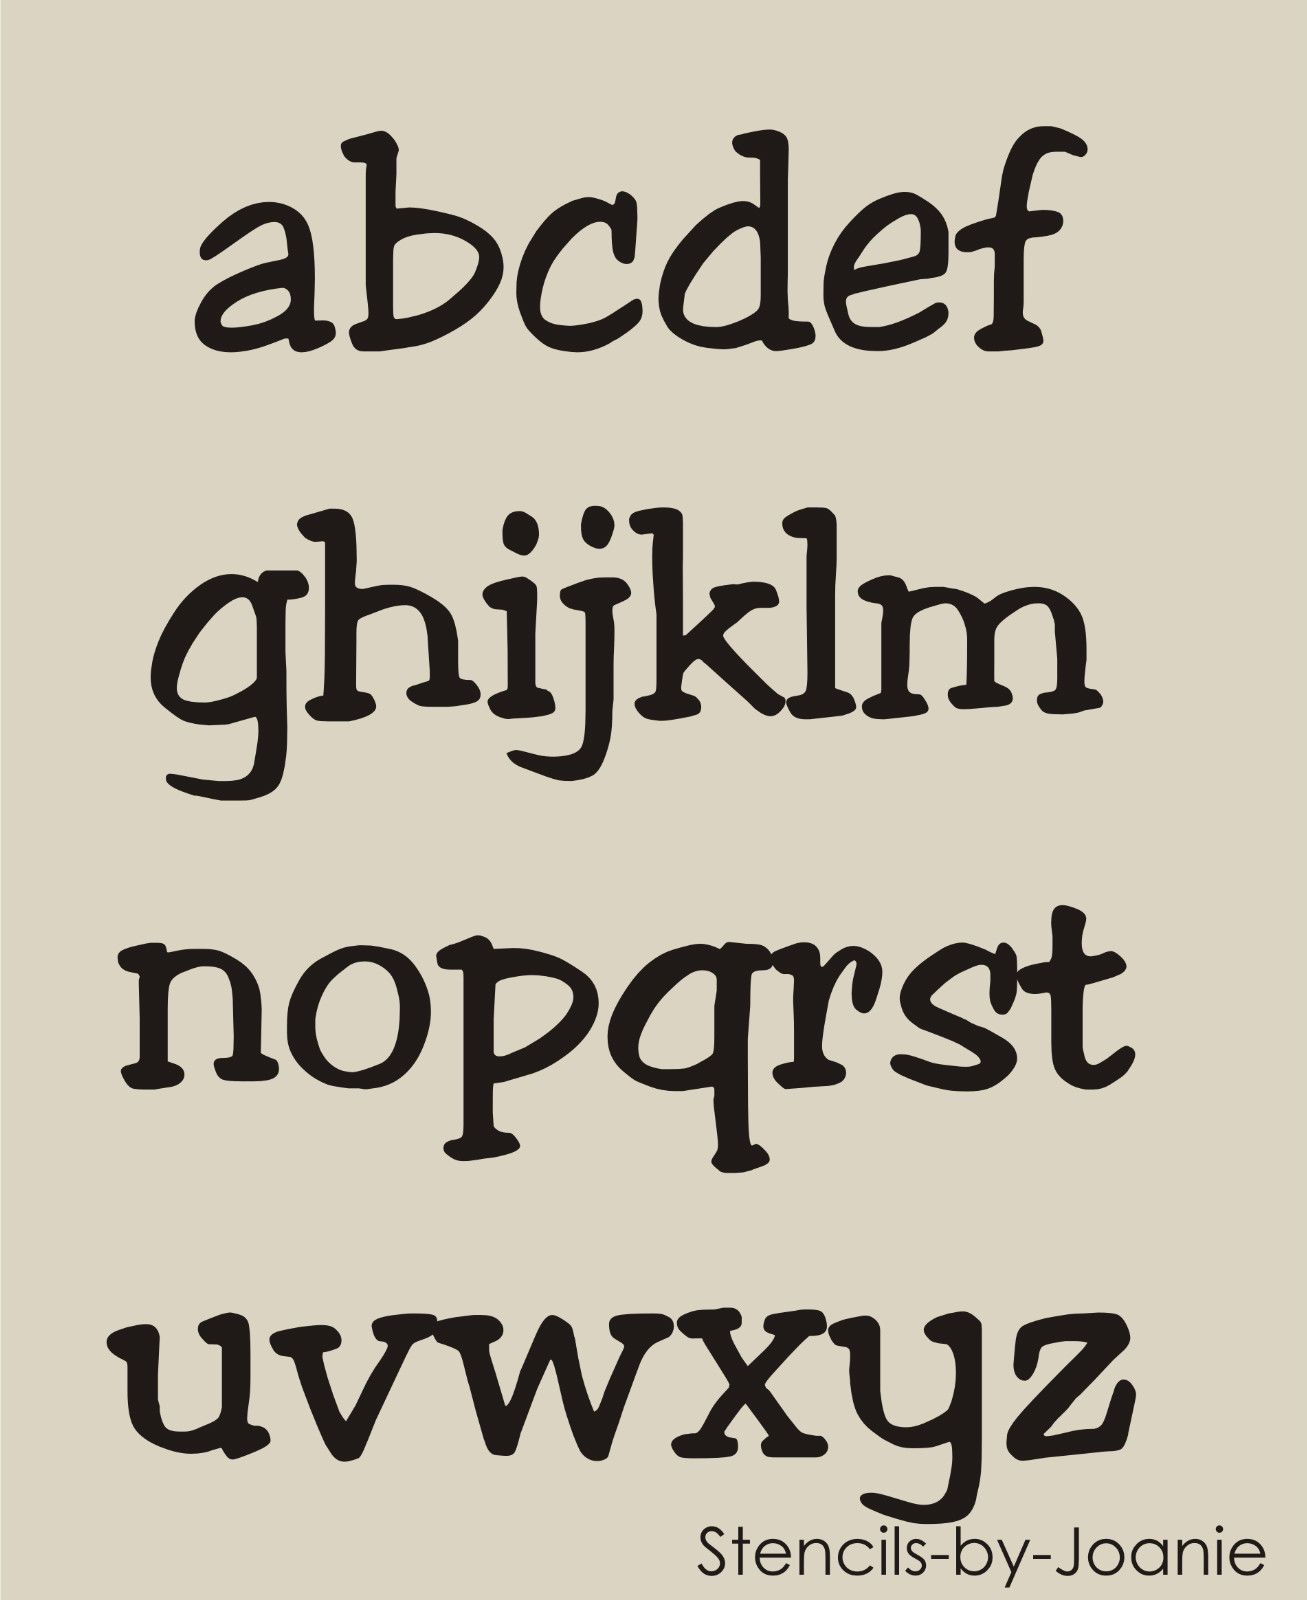 Stencil Fonts For Cut Out  WowCom  Image Results  Stencils